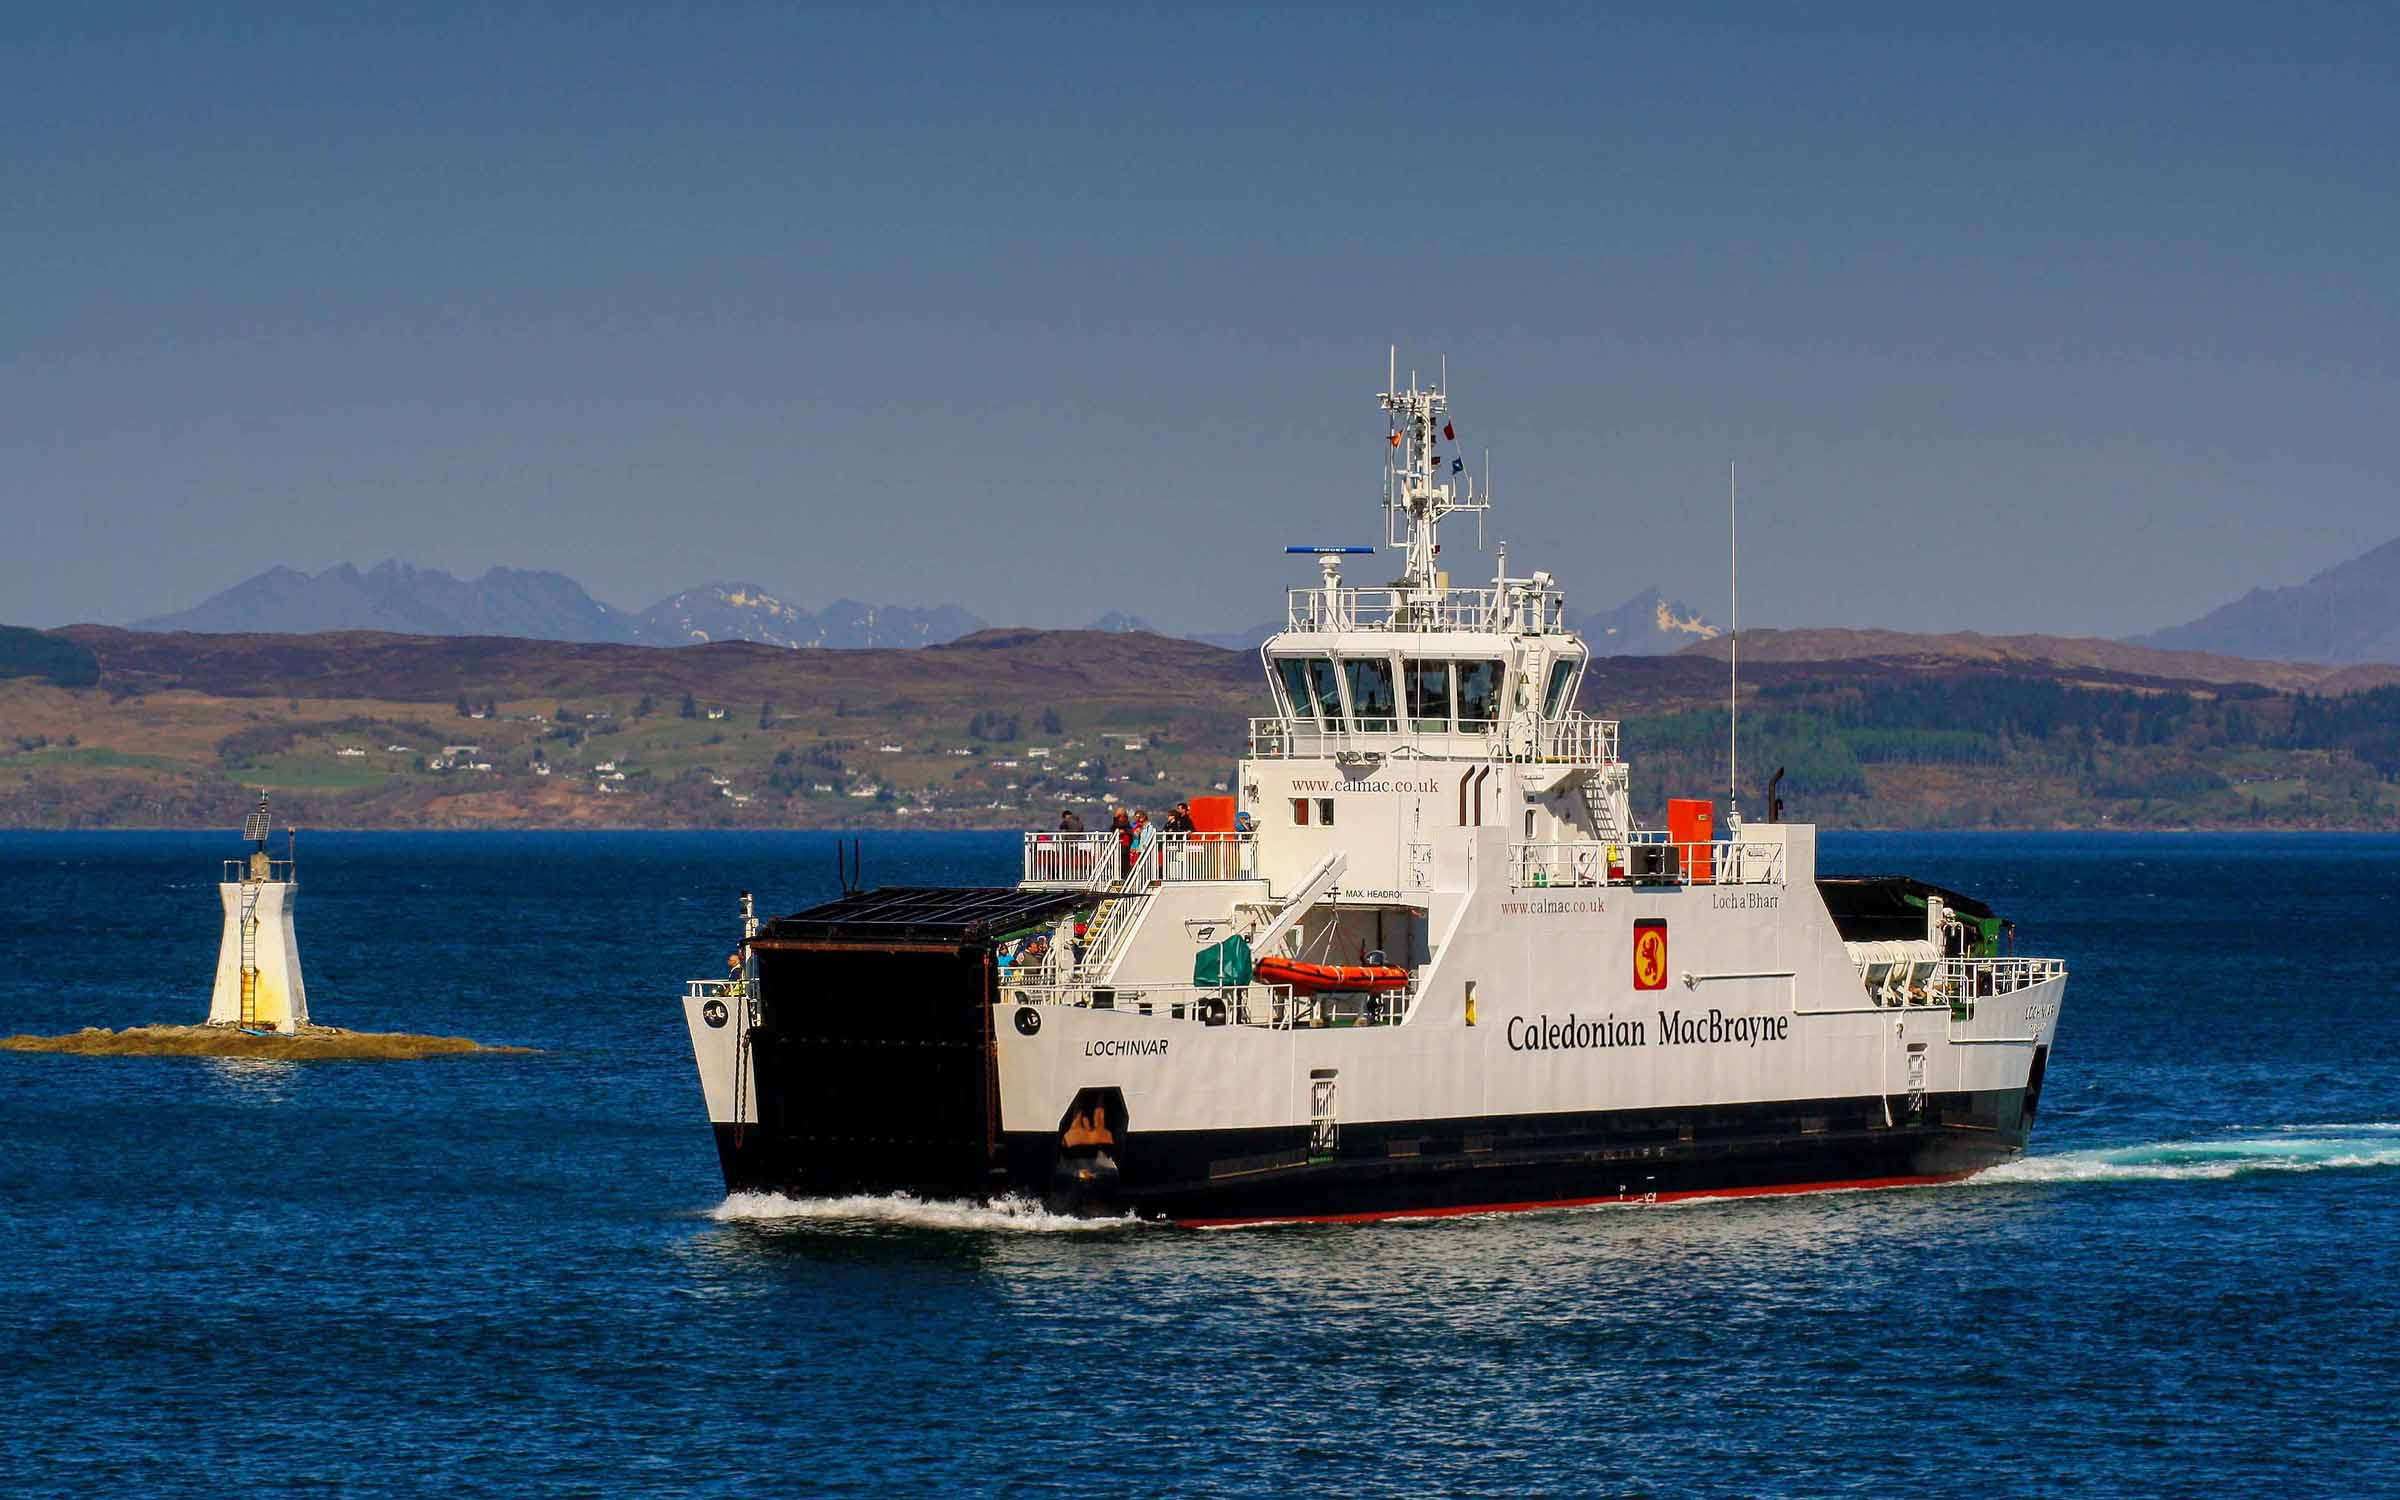 Lochinvar arriving at Mallaig (Photo: SoC Crew)